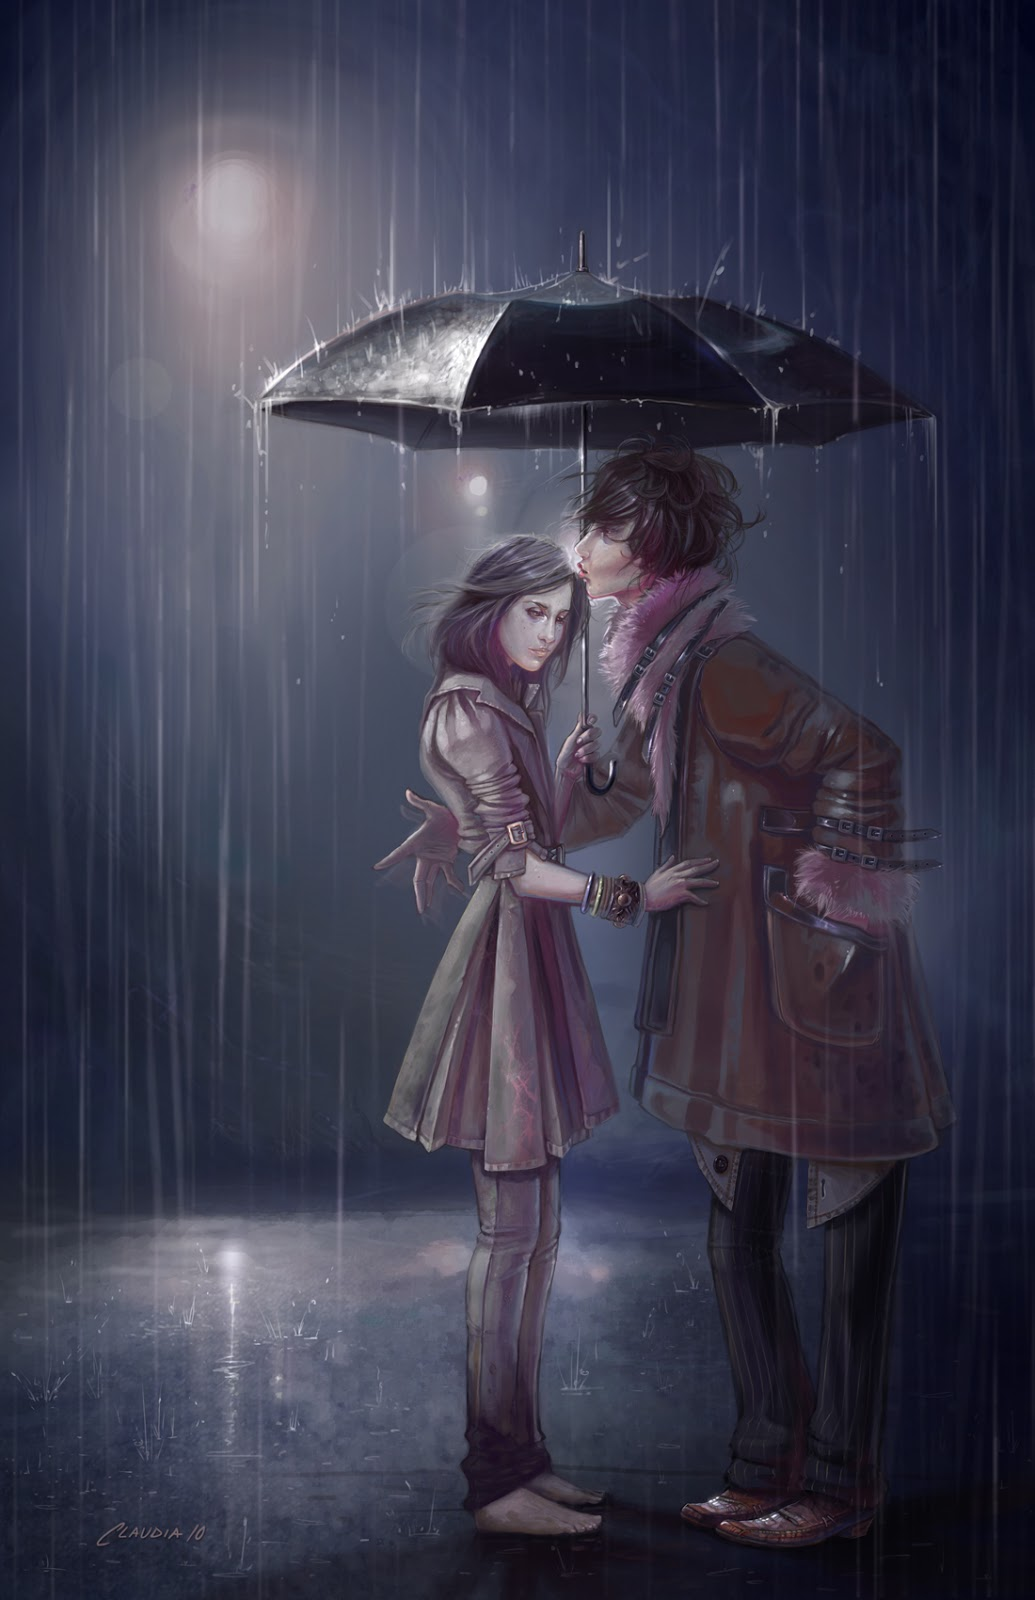 http://4.bp.blogspot.com/-nyzaH9cAKlE/UNqN3Fk0XzI/AAAAAAAAAgo/vAwWIt17UKA/s1600/1100x1700_1766_Winter_Rain_2d_illustration_winter_rain_umbrella_girl_female_woman_picture_image_digital_art.jpg